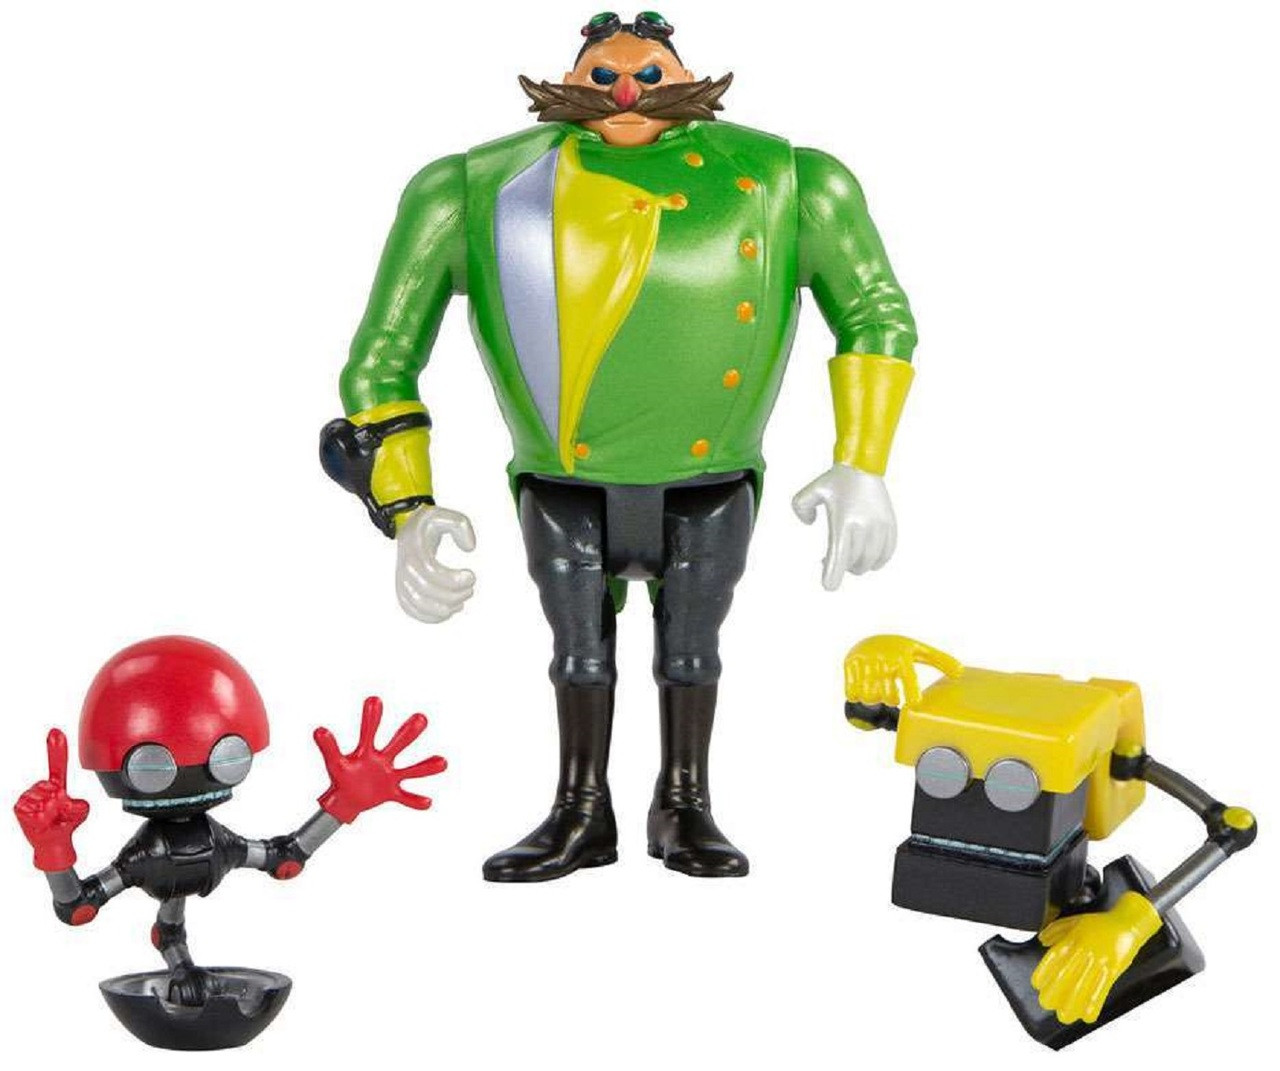 Sonic the Hedgehog - Action Figures - Orbot, Parallel Universe Villian, Cubot - 3 Inch Diorama - Villian Edition